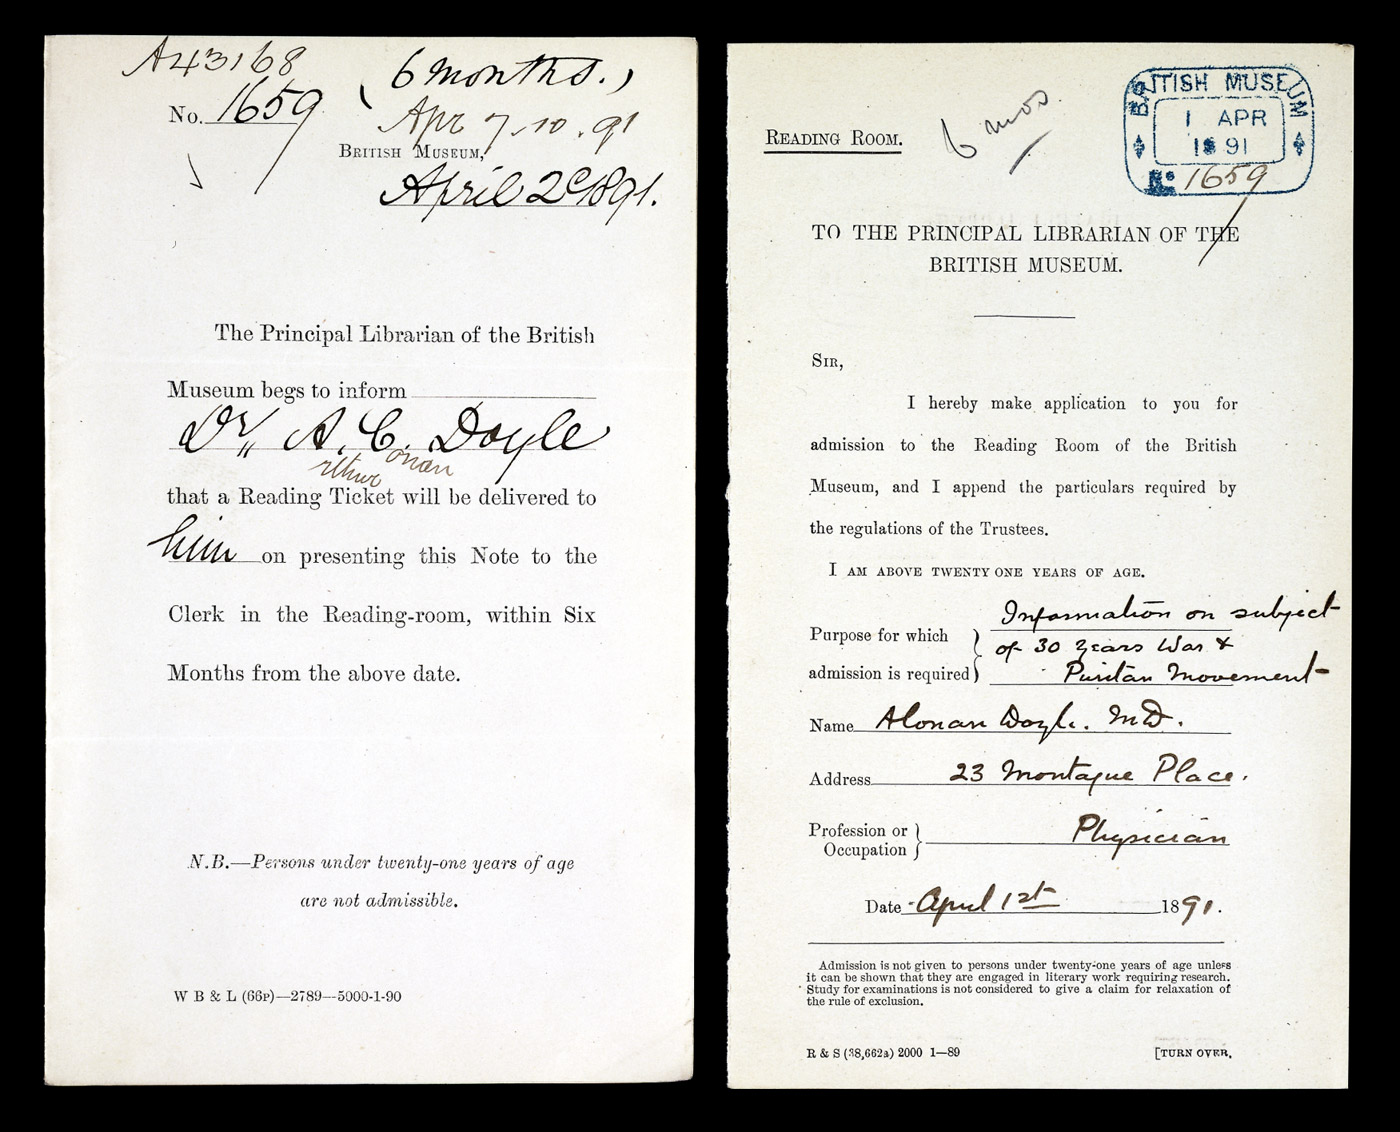 Arthur Conan Doyle's application for a ticket to the Reading Room.